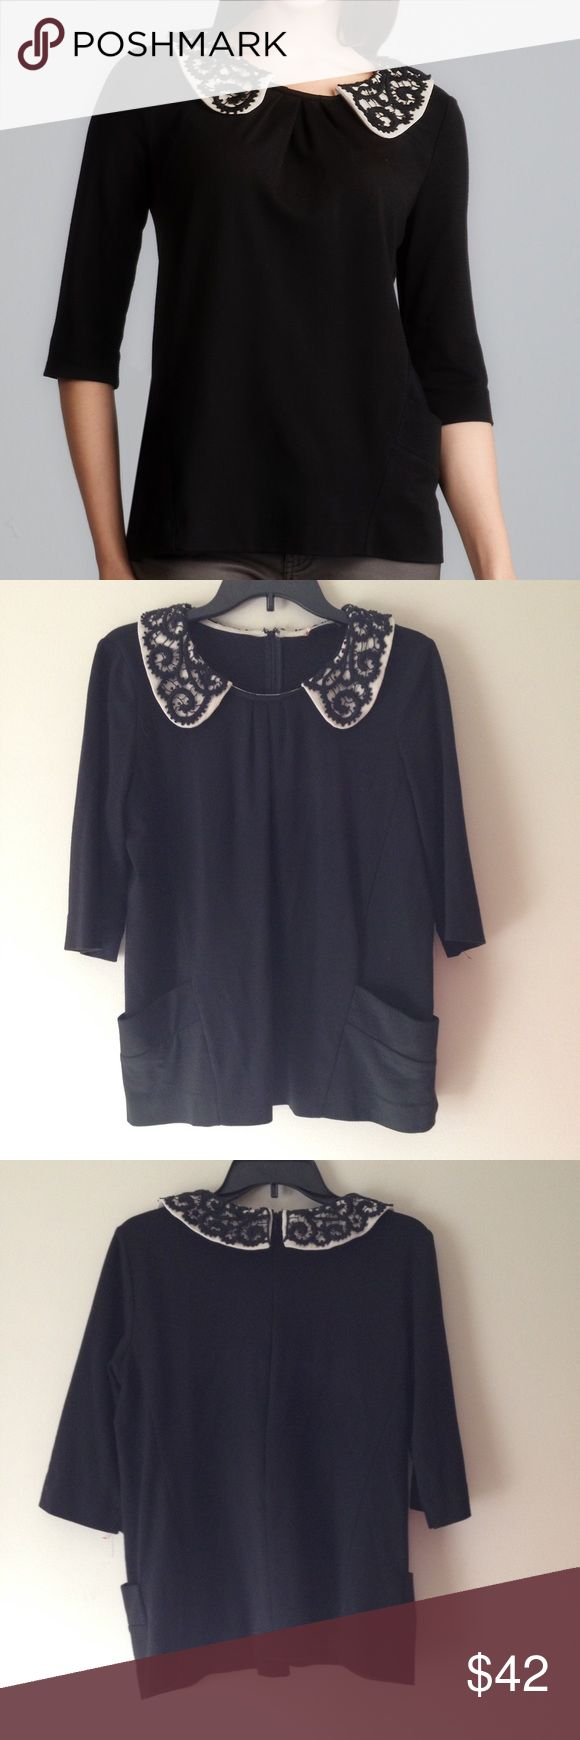 """Sinequanone Lace Collar Black Blouse Top Sinequanone Lace Collar Black Blouse Top. Designed in Paris. Back Concealed Zipper Closure. Round Neckline. Beautiful Lace Collar, 2 Front Pockets. Length 28"""", Chest 21"""". No Size Tags. Stretchy. Excellent Pre-Worn Condition. No Visible Stains, Fading or Flaws. Retail $228.00 #0212171807 ✨Please keep in mind that measurements are provided only as a guide and are approximate. Color appearance may vary depending on your monitor settings. Anthropologie…"""